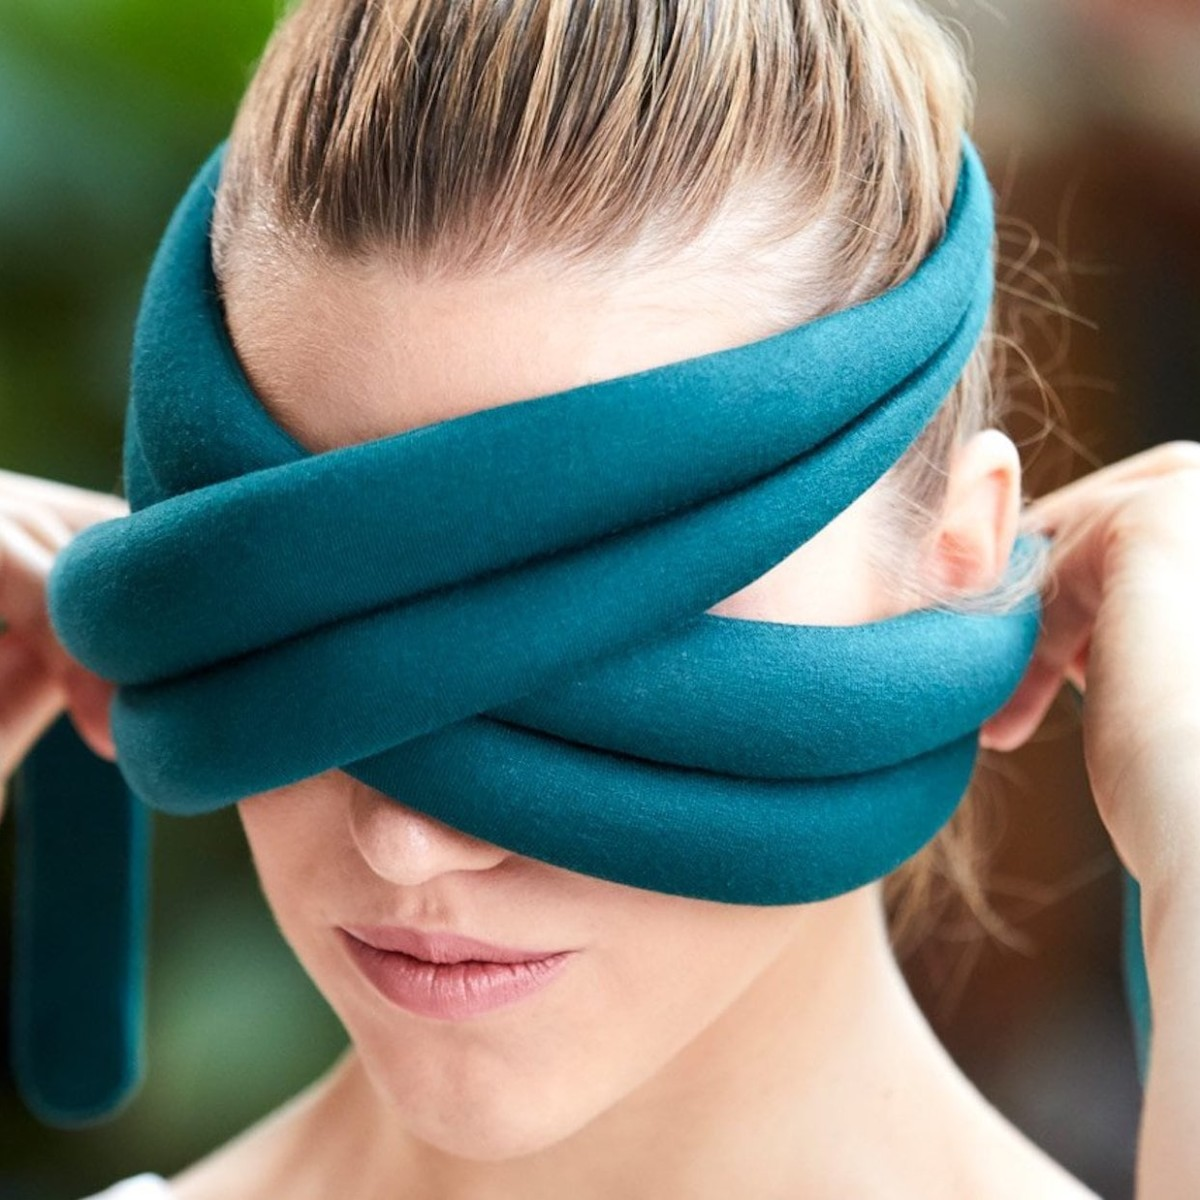 OSTRICHPILLOW LOOP Eye Mask Pillow wraps around your face to black out the world